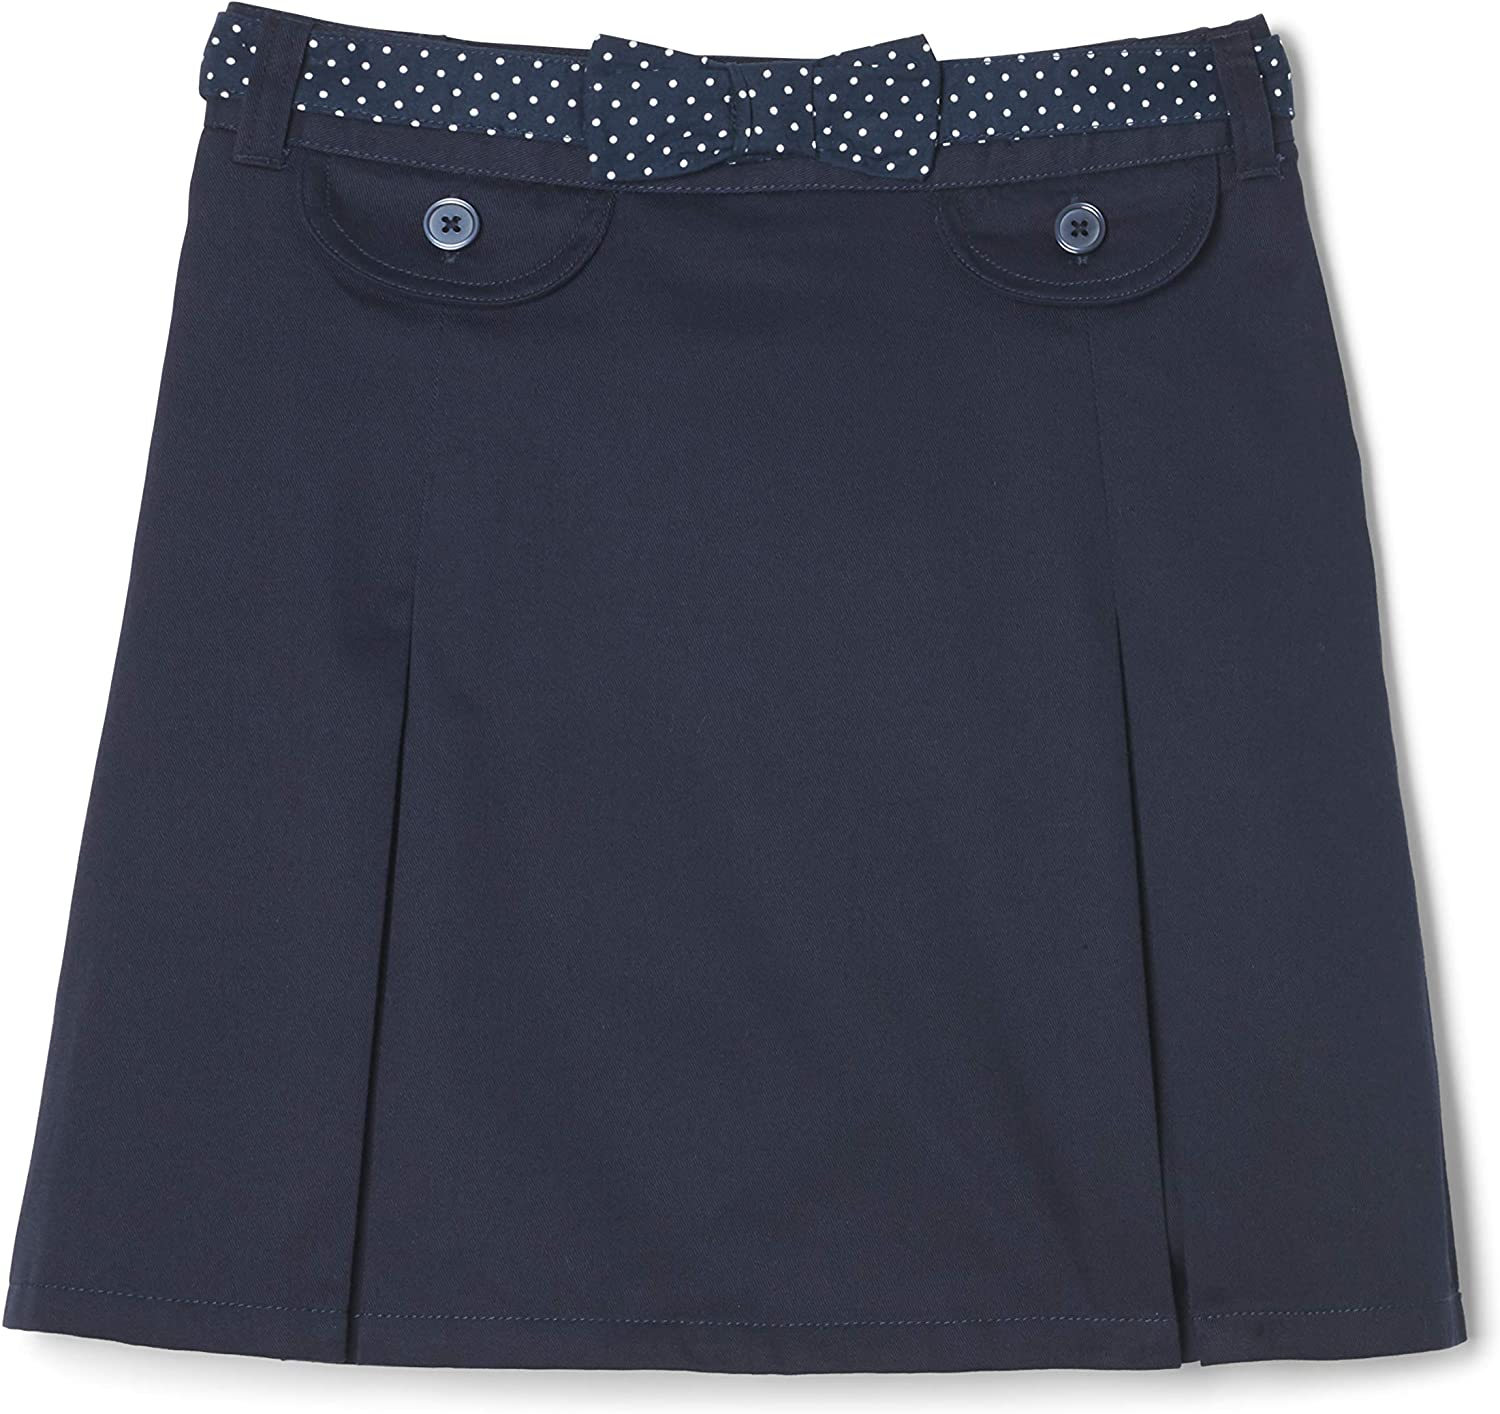 French Toast Girls' Polka Dot Belted Scooter: Clothing